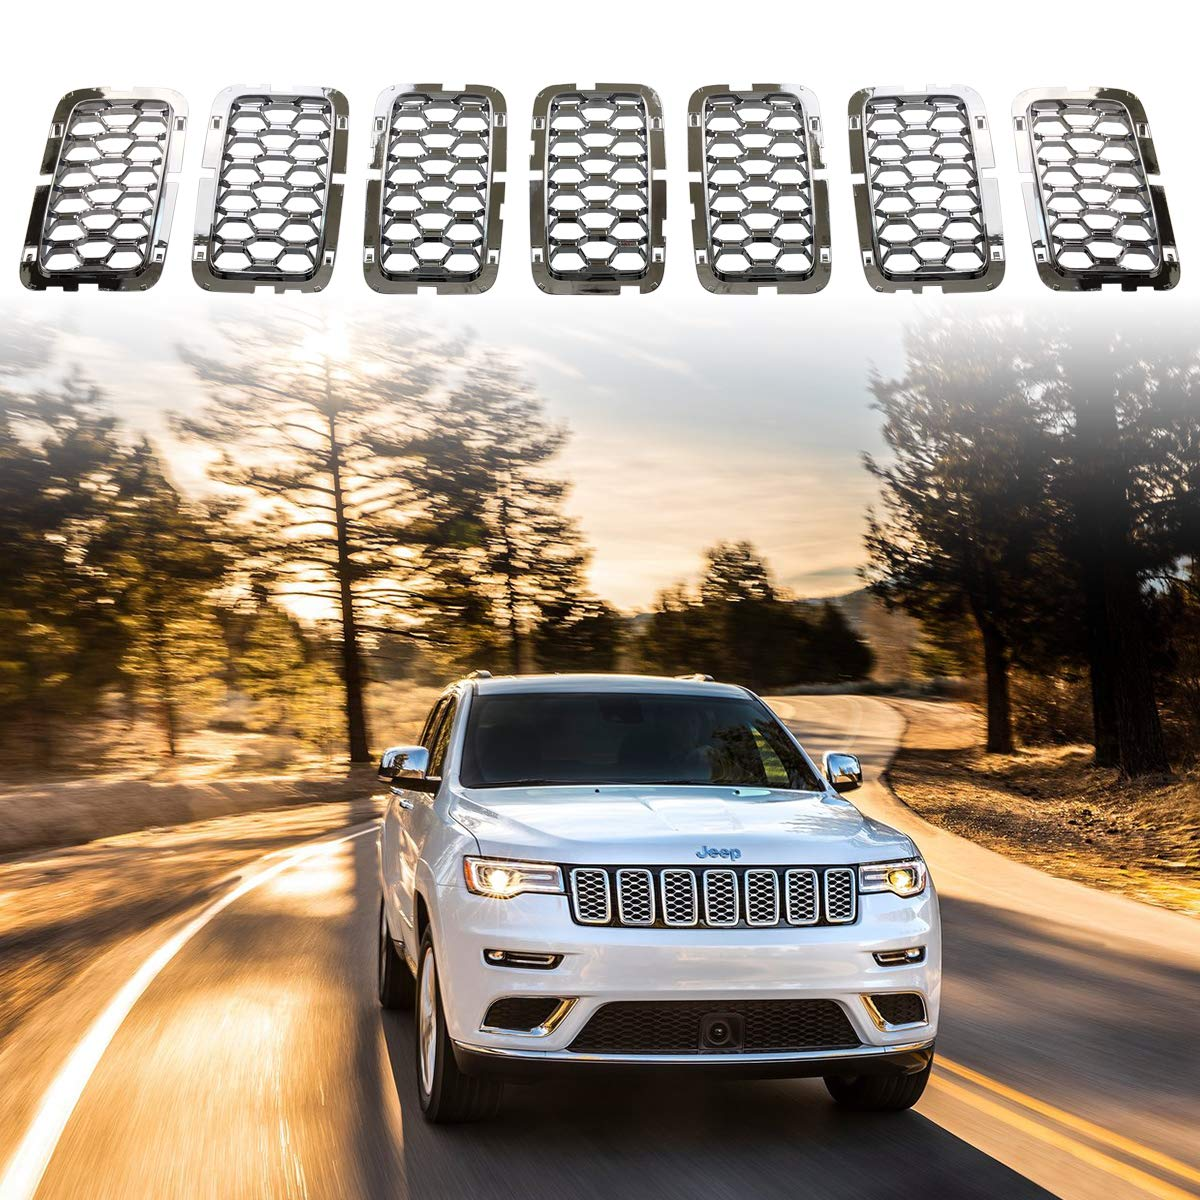 Astra Depot Compatible with 2017 2018 2019 Jeep Grand Cherokee Grille Grill Cover Inserts Kit 7pcs Glossy Black